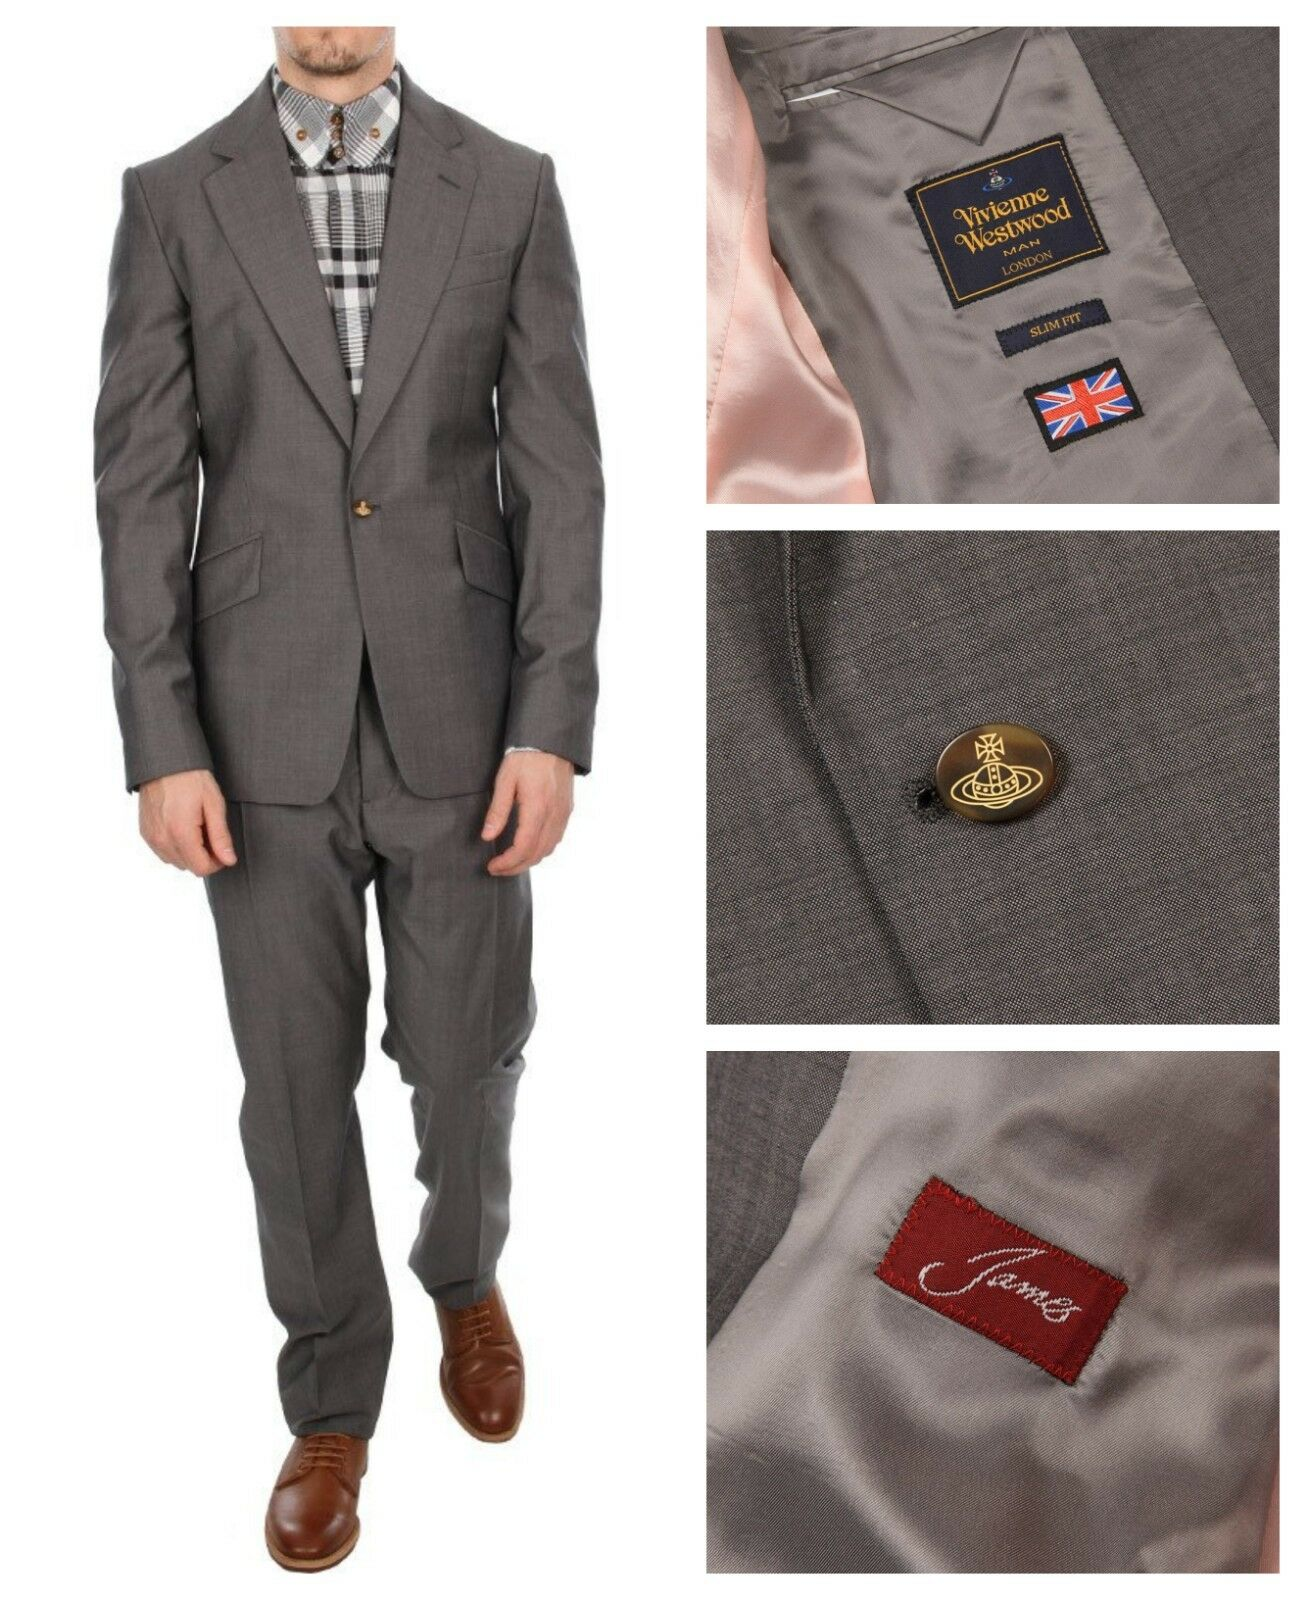 NWT AUTHENTIC VIVIENNE WESTWOOD grau SLIM FIT